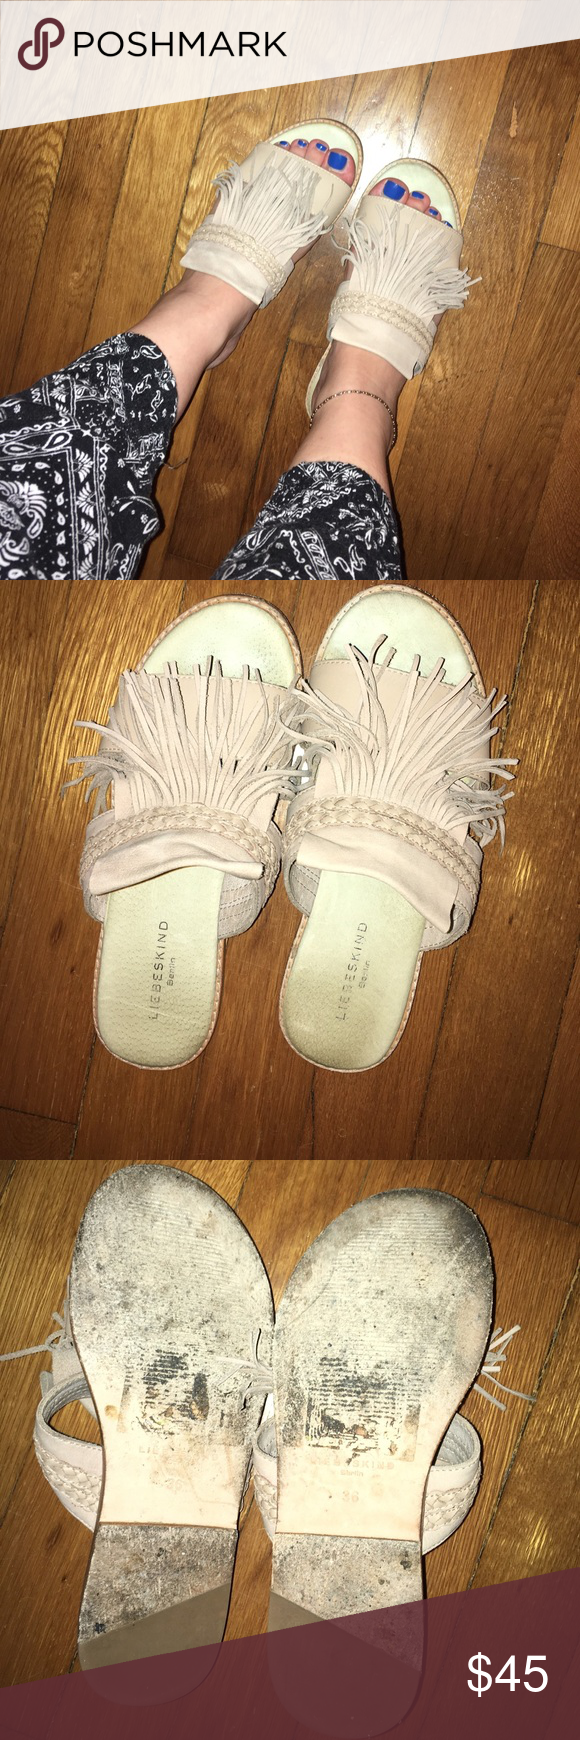 Fringe Leather Slides Super soft slides made in Berlin! On trend fringe makes these a do not miss. Leg lengthening and go with just about anything! Liebeskind Shoes Sandals